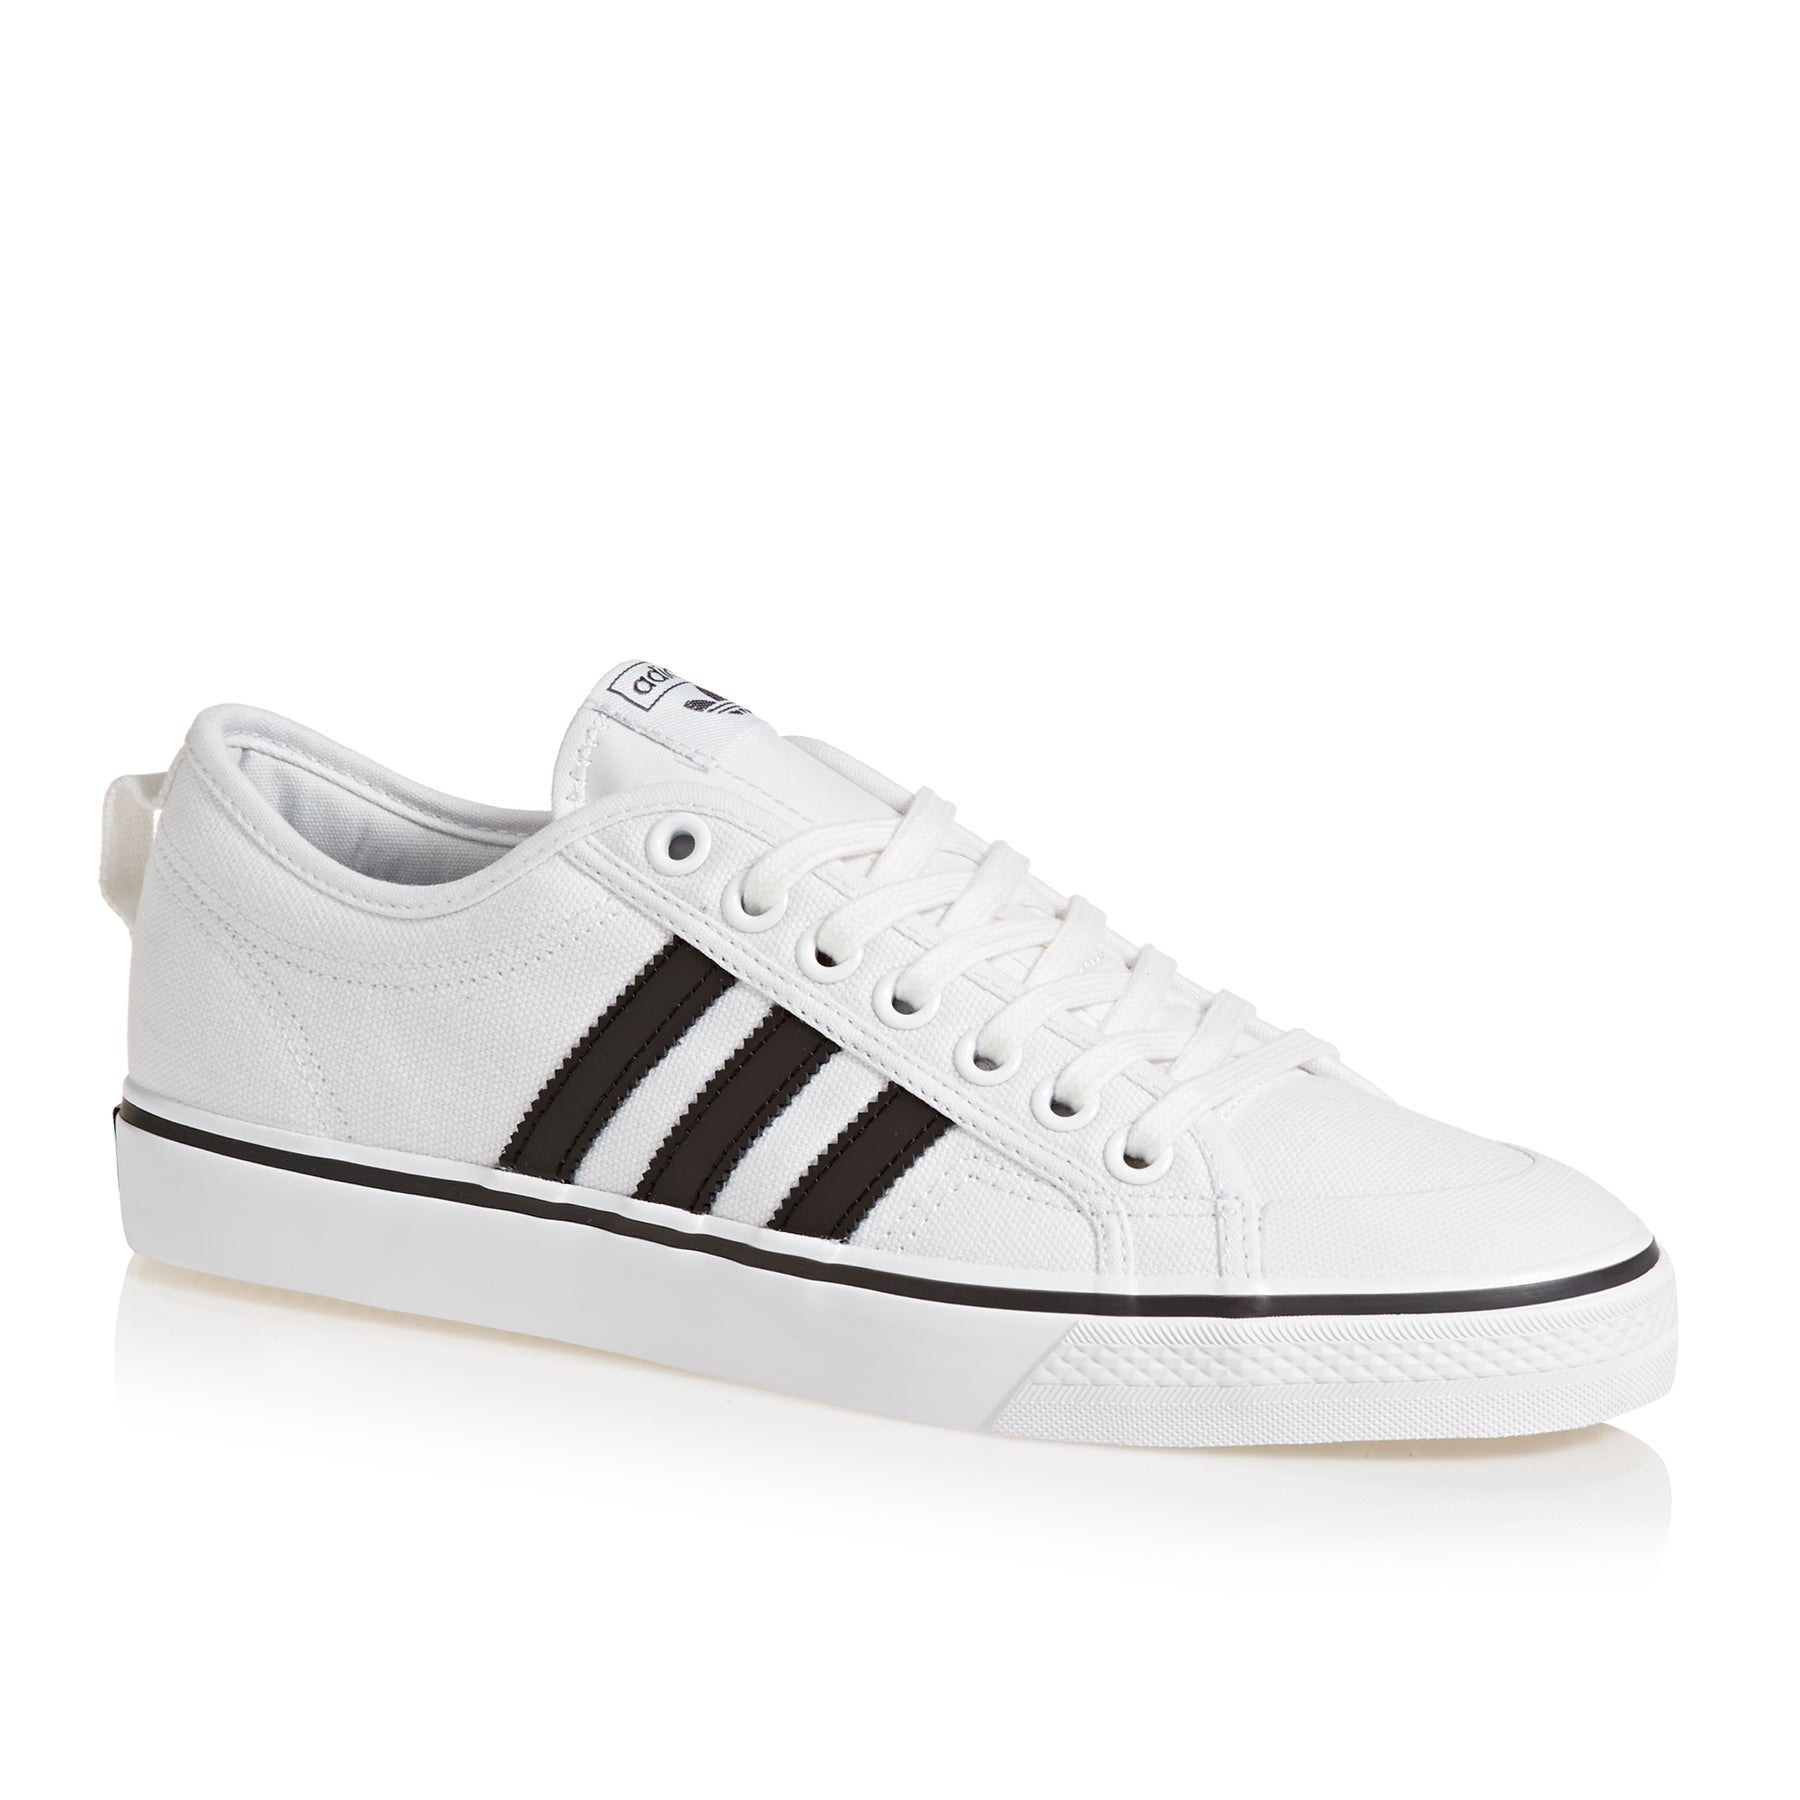 f9158ffeb1 Adidas Originals Nizza Shoes available from Surfdome